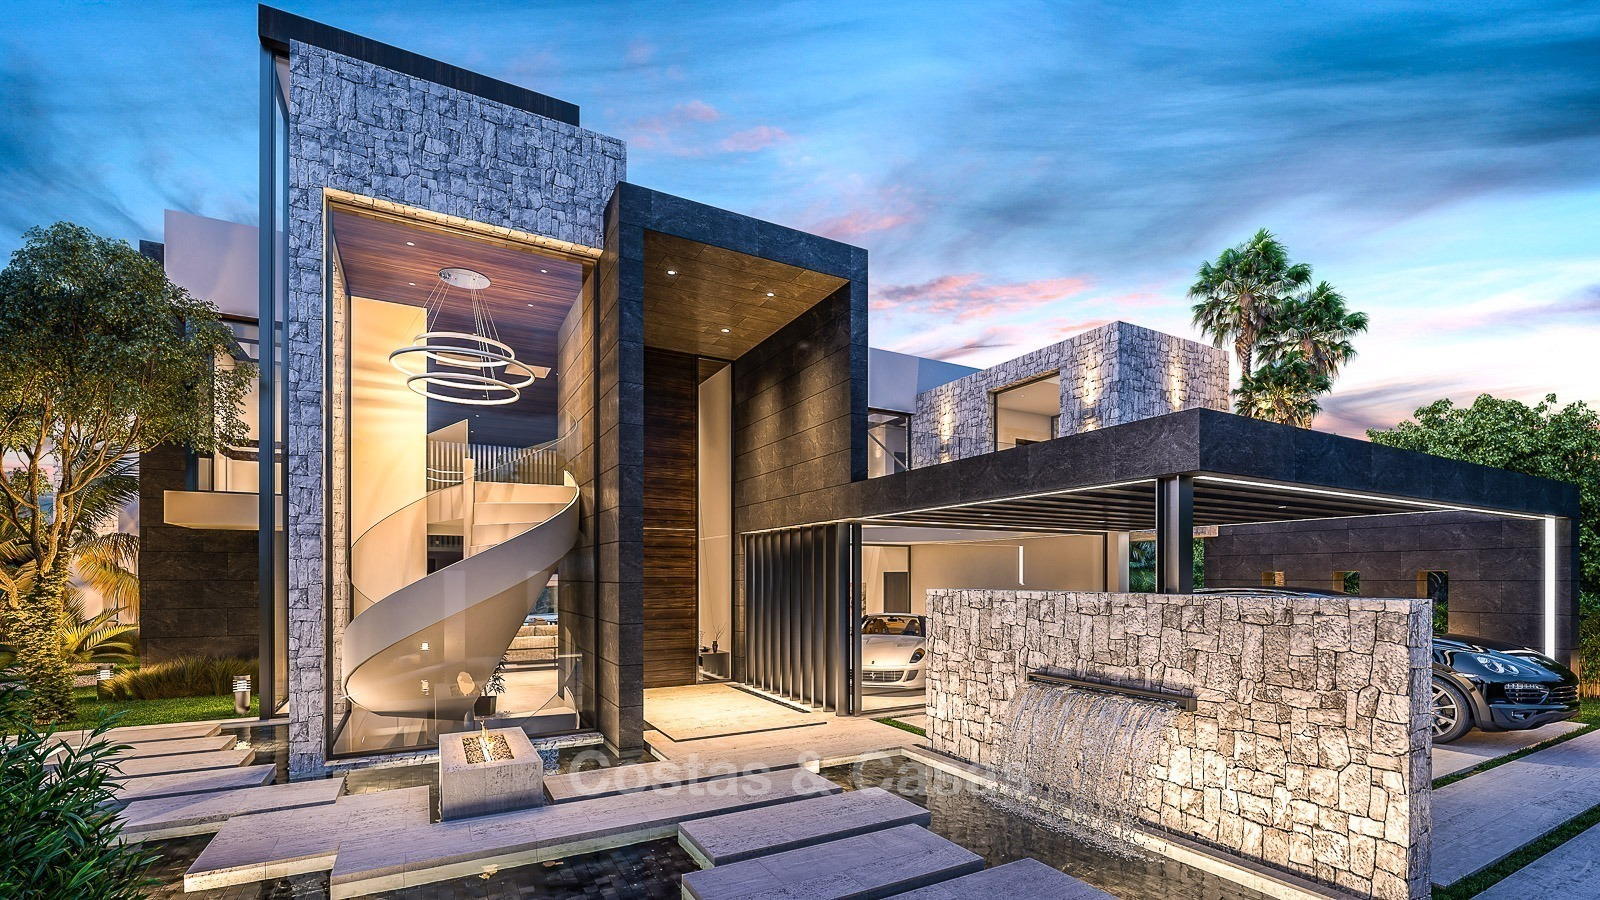 Luxury modern villa for sale located on a golf course with panoramic golf and fullscreen